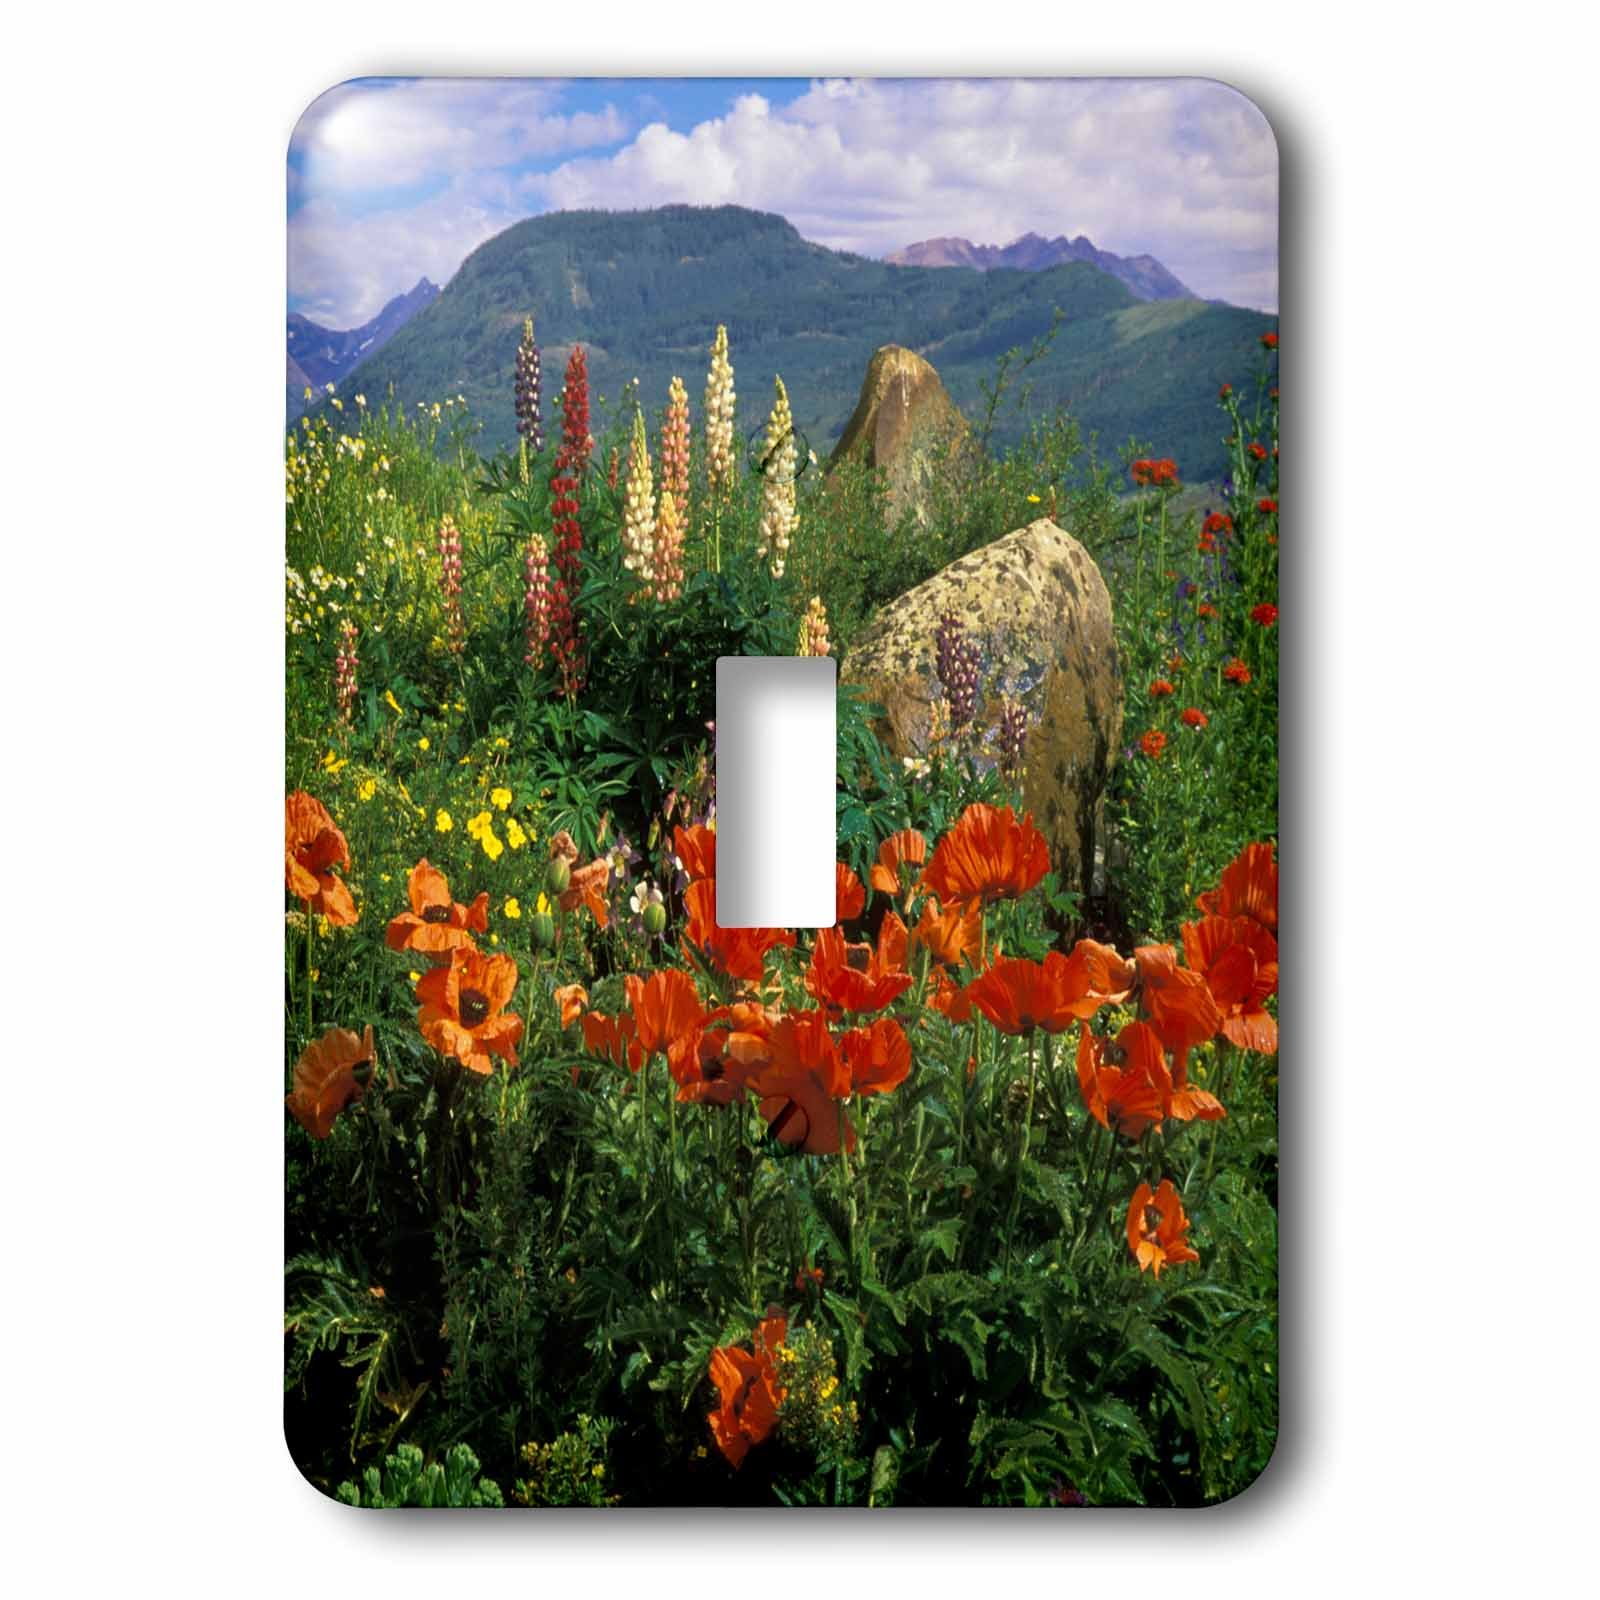 3dRose lsp_230385_1 USA, Colorado, Crested Butte. Poppies and Lupine in Mountain Garden Toggle Switch, Multicolor